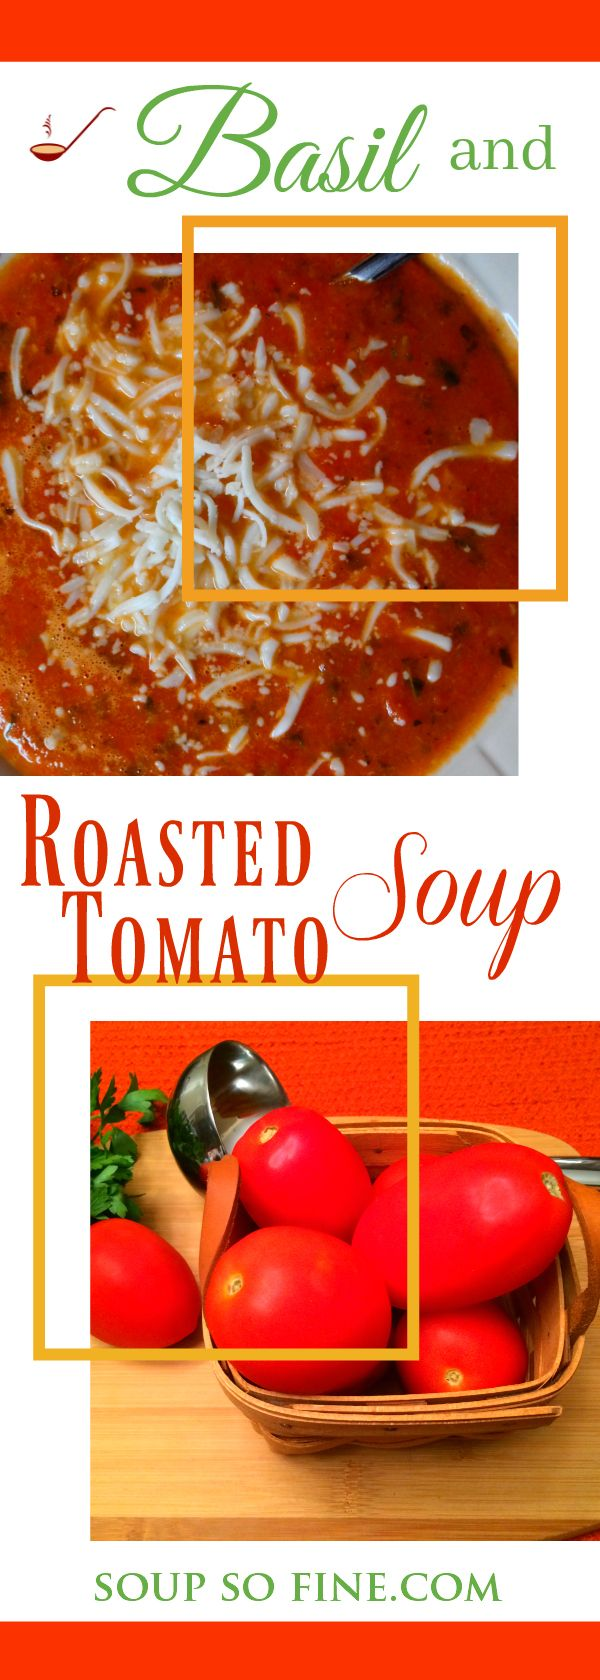 This wonderful soup features a flavorful combination of roasted tomatoes and fresh basil. Minced garlic and red pepper flakes are sautéed in butterthen blended with the roasted tomatoes, onions...  Perfect for a chilly autumn day! | #homemadesouprecipes #vegetablesouprecipes #soups | SoupSoFine.com